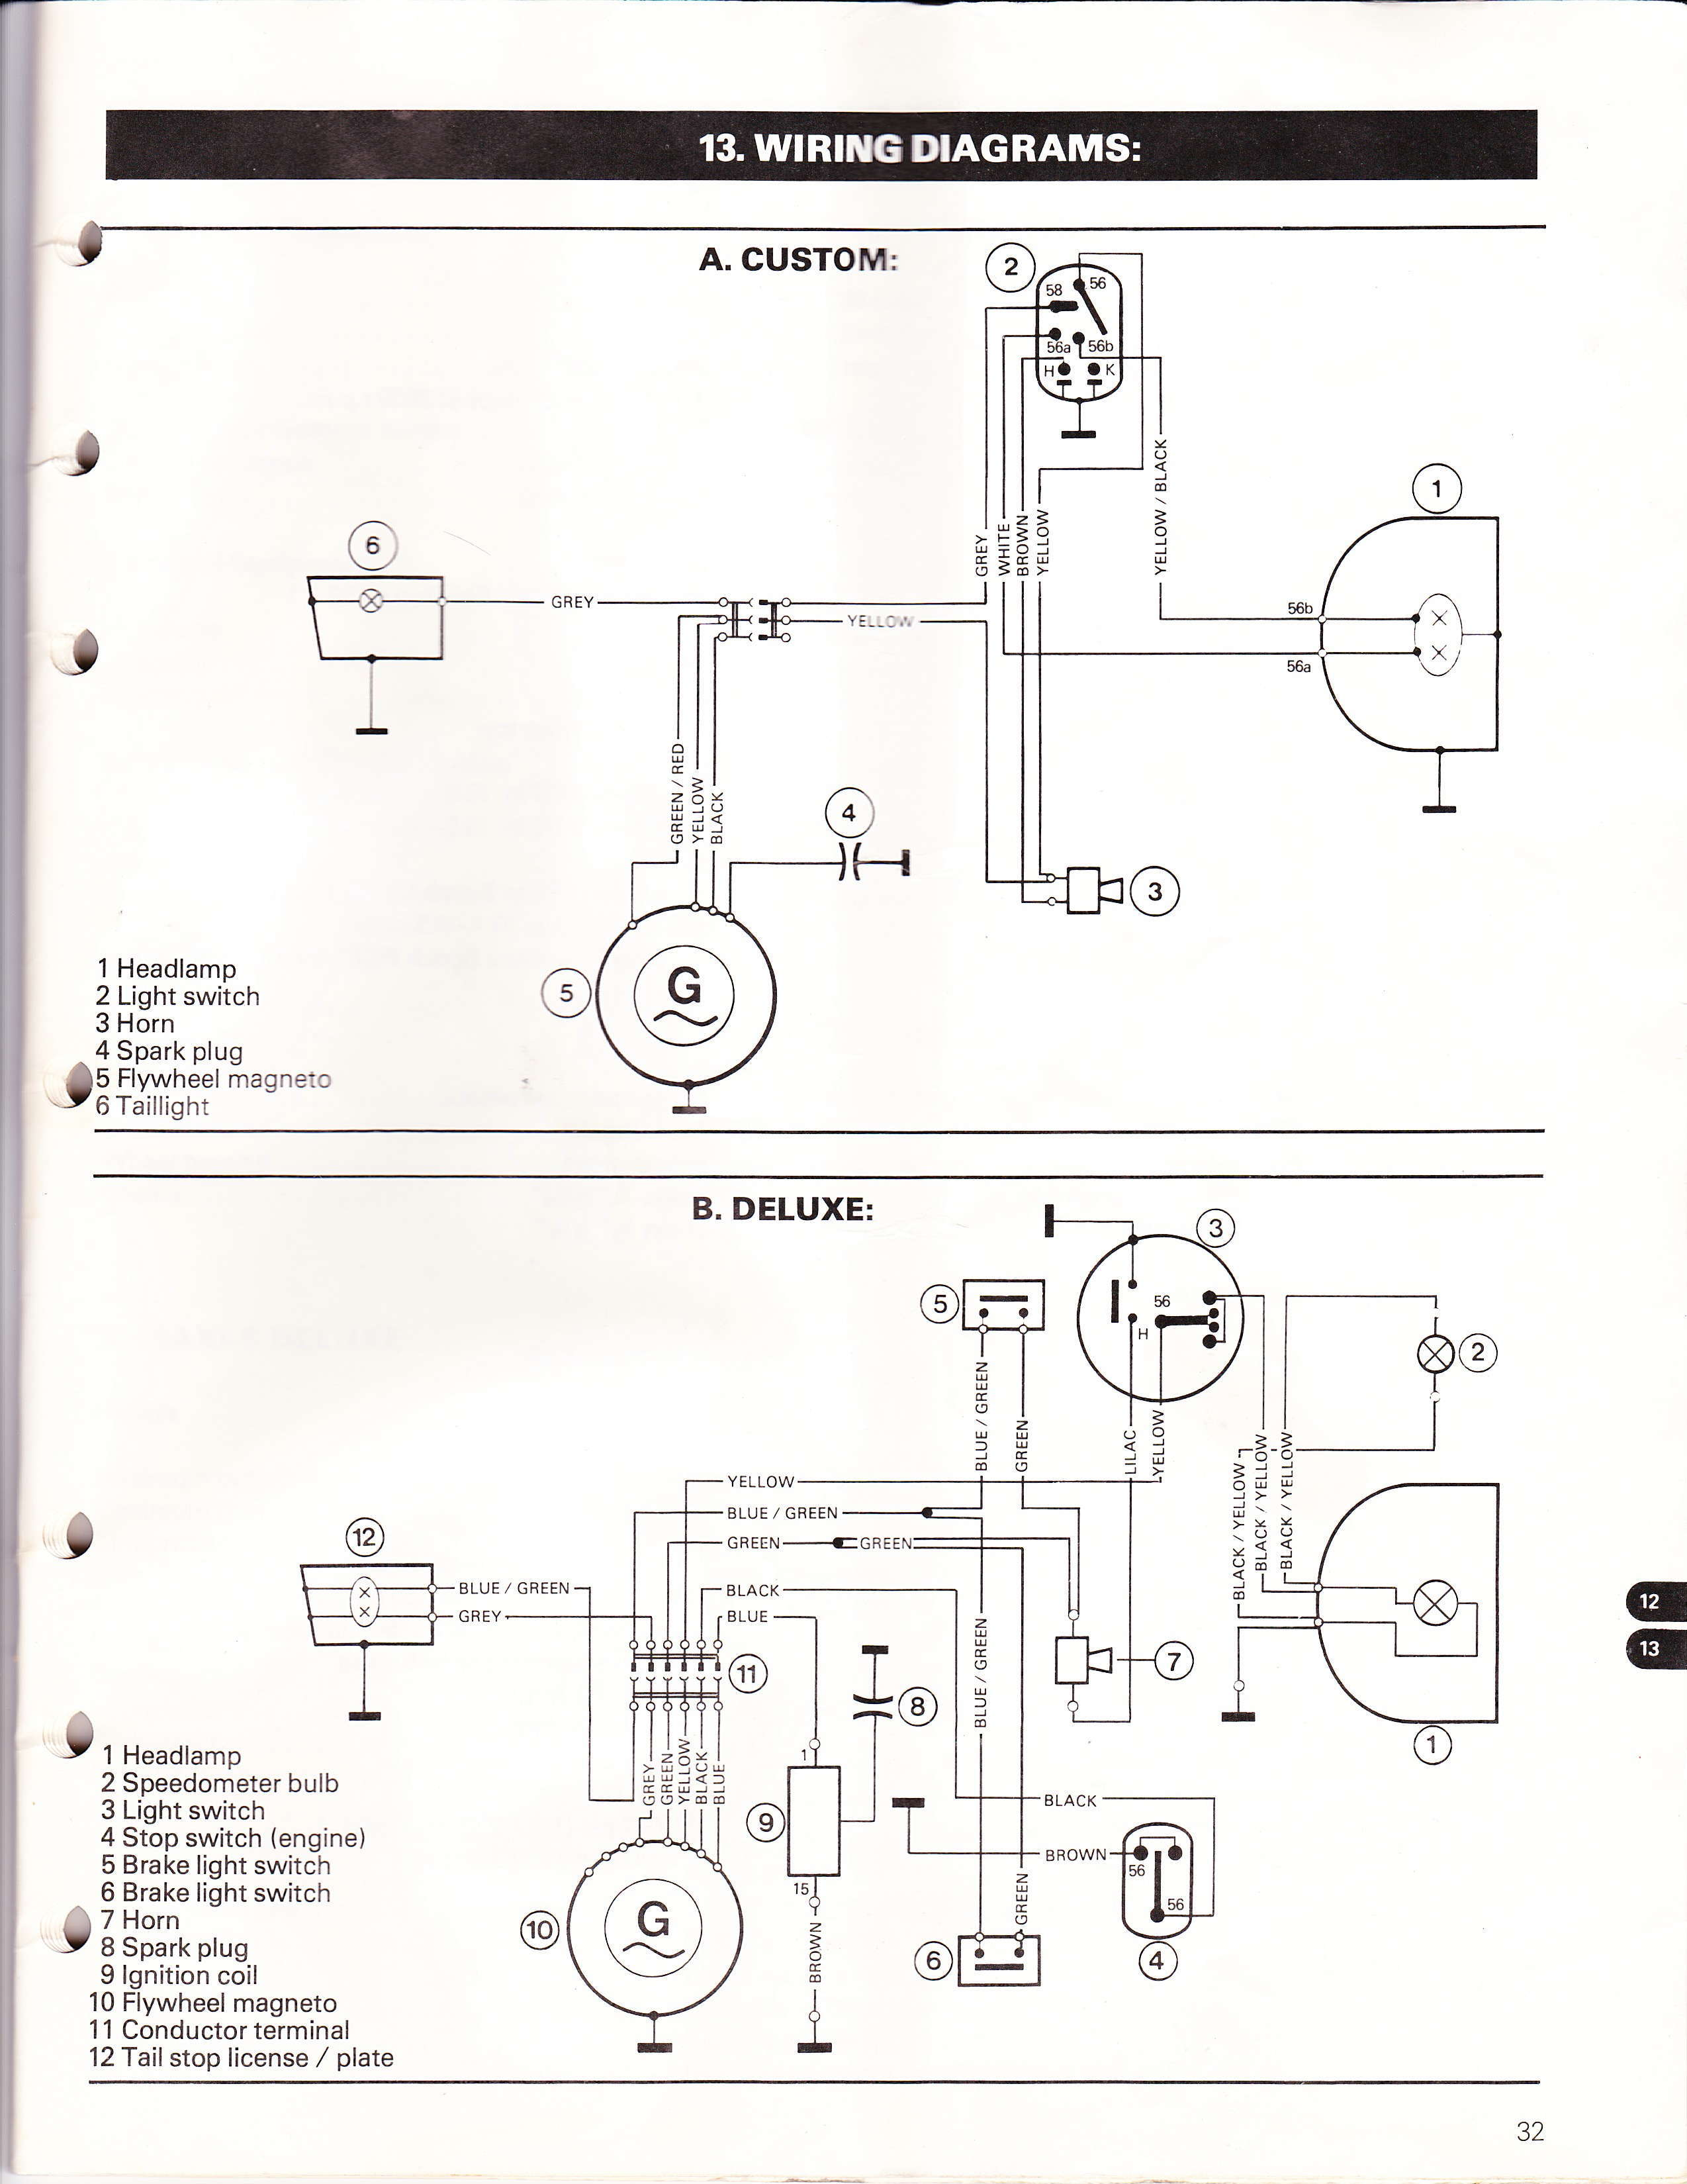 wire diagram for really early puchs